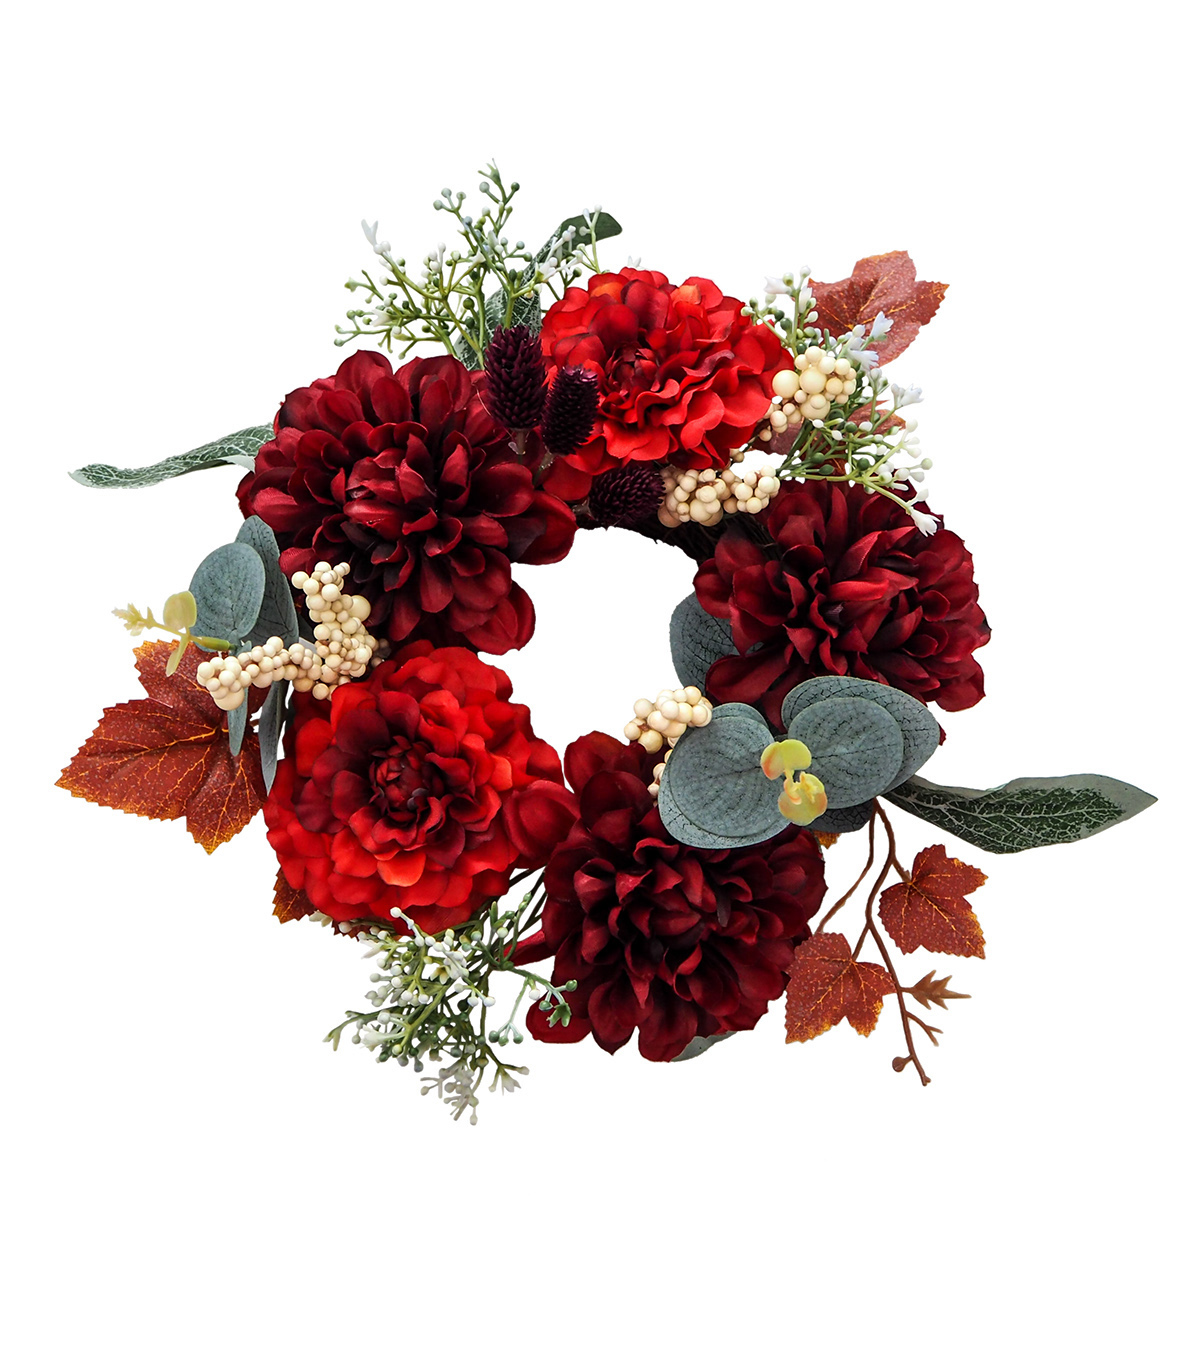 Blooming Autumn Frosted Protea & Berries Mini Wreath-Burgundy